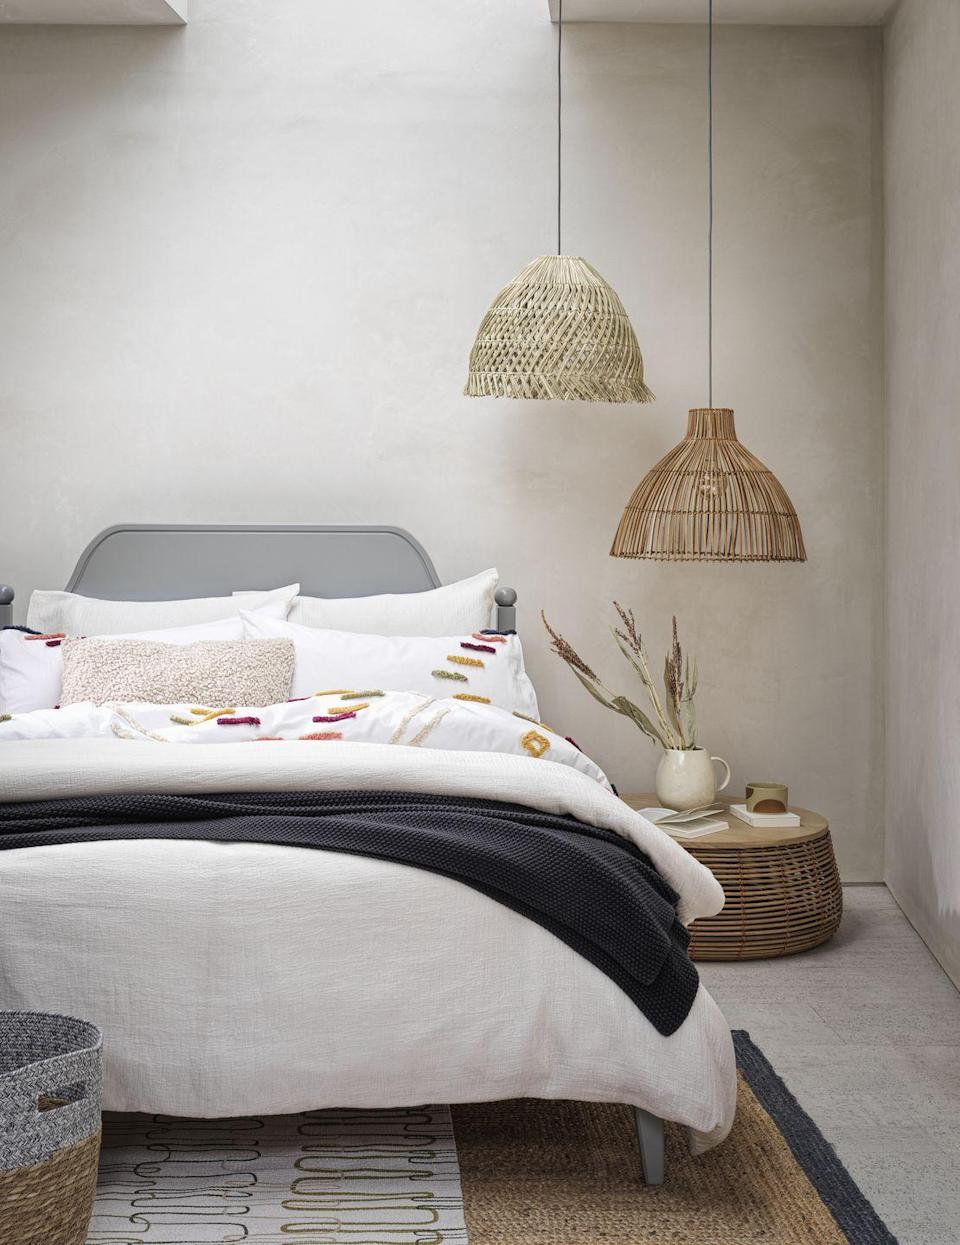 <p>Natural materials, such as seagrass and rattan, are not going anywhere. Formed from sustainable materials, they are favoured for being lightweight, stylish and affordable. </p><p>'Seagrass is well-known for its biodegradable properties and is as<br>visually appealing as rattan,' explains Anna Cross, Home Living Buying Manager. 'A hero piece for autumn is a handwoven pendant shade, the pleasingly homespun fringed base casts a romantic dappled light.'</p>